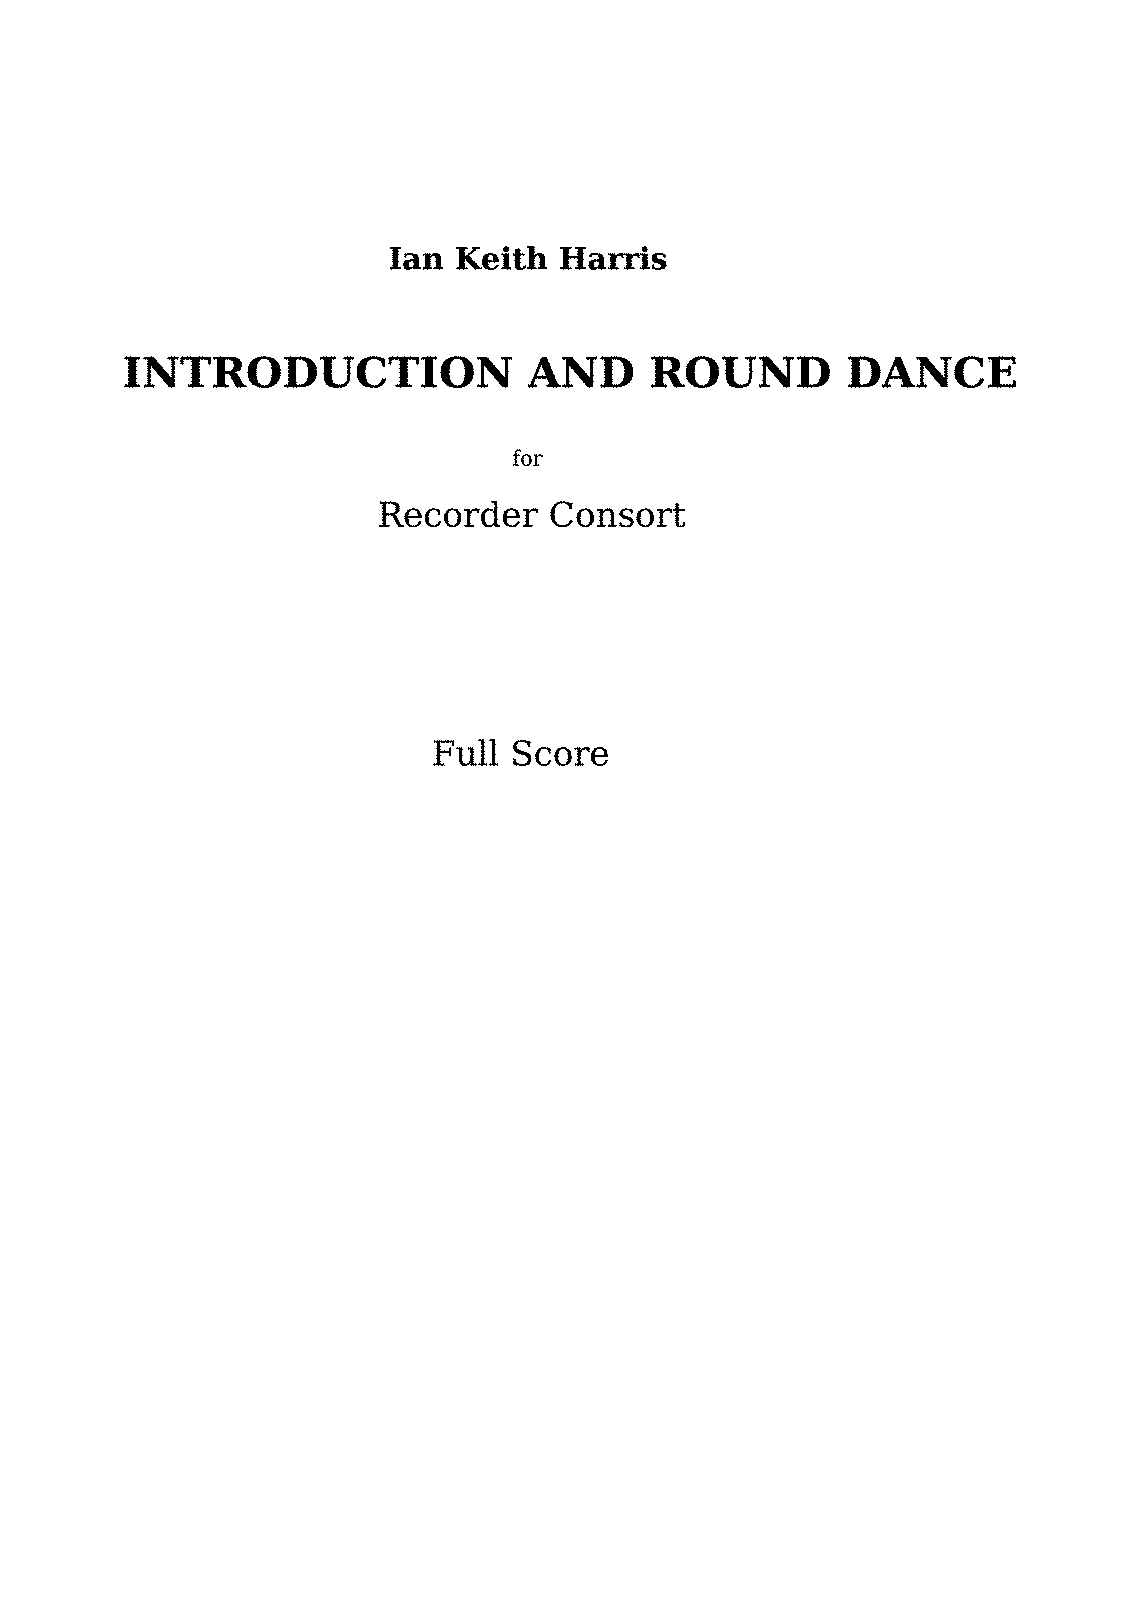 PMLP309652-Introduction-and-Round-Dance.pdf